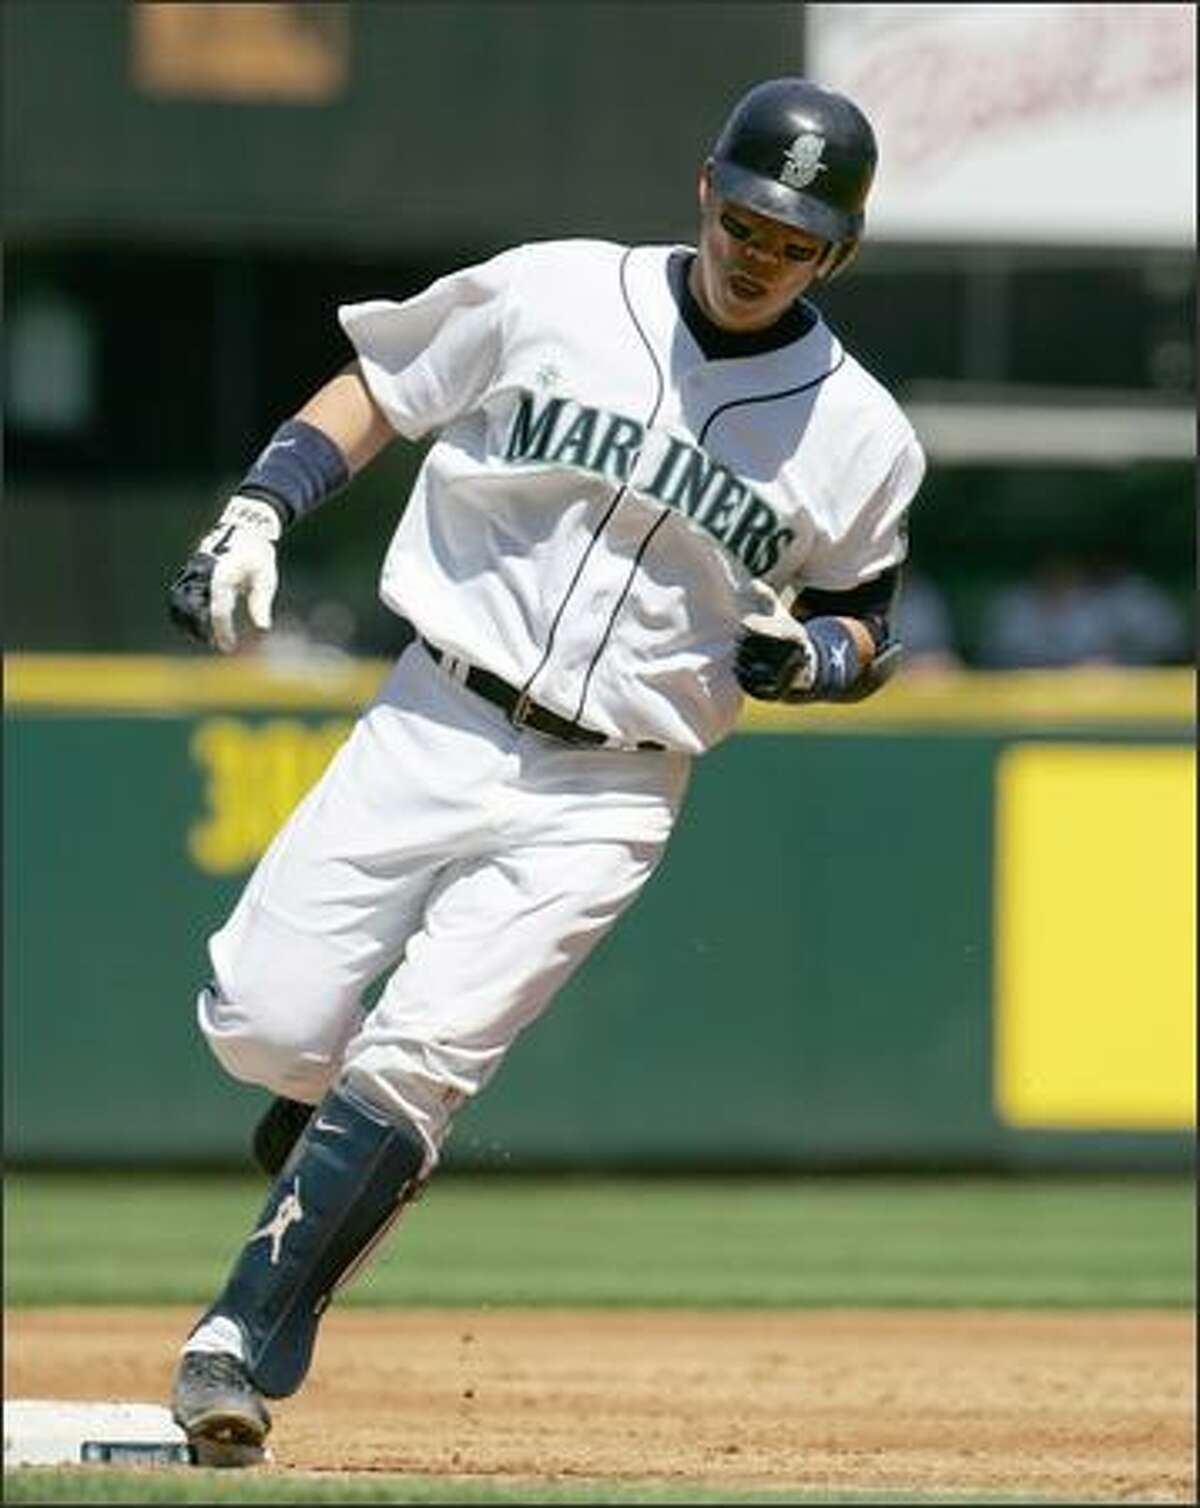 Mariners catcher Kenji Johjima touches third base after hitting a two-run home run in the second inning. Seattle defeated Oakland 4-3. (AP Photo/Kevin P. Casey)